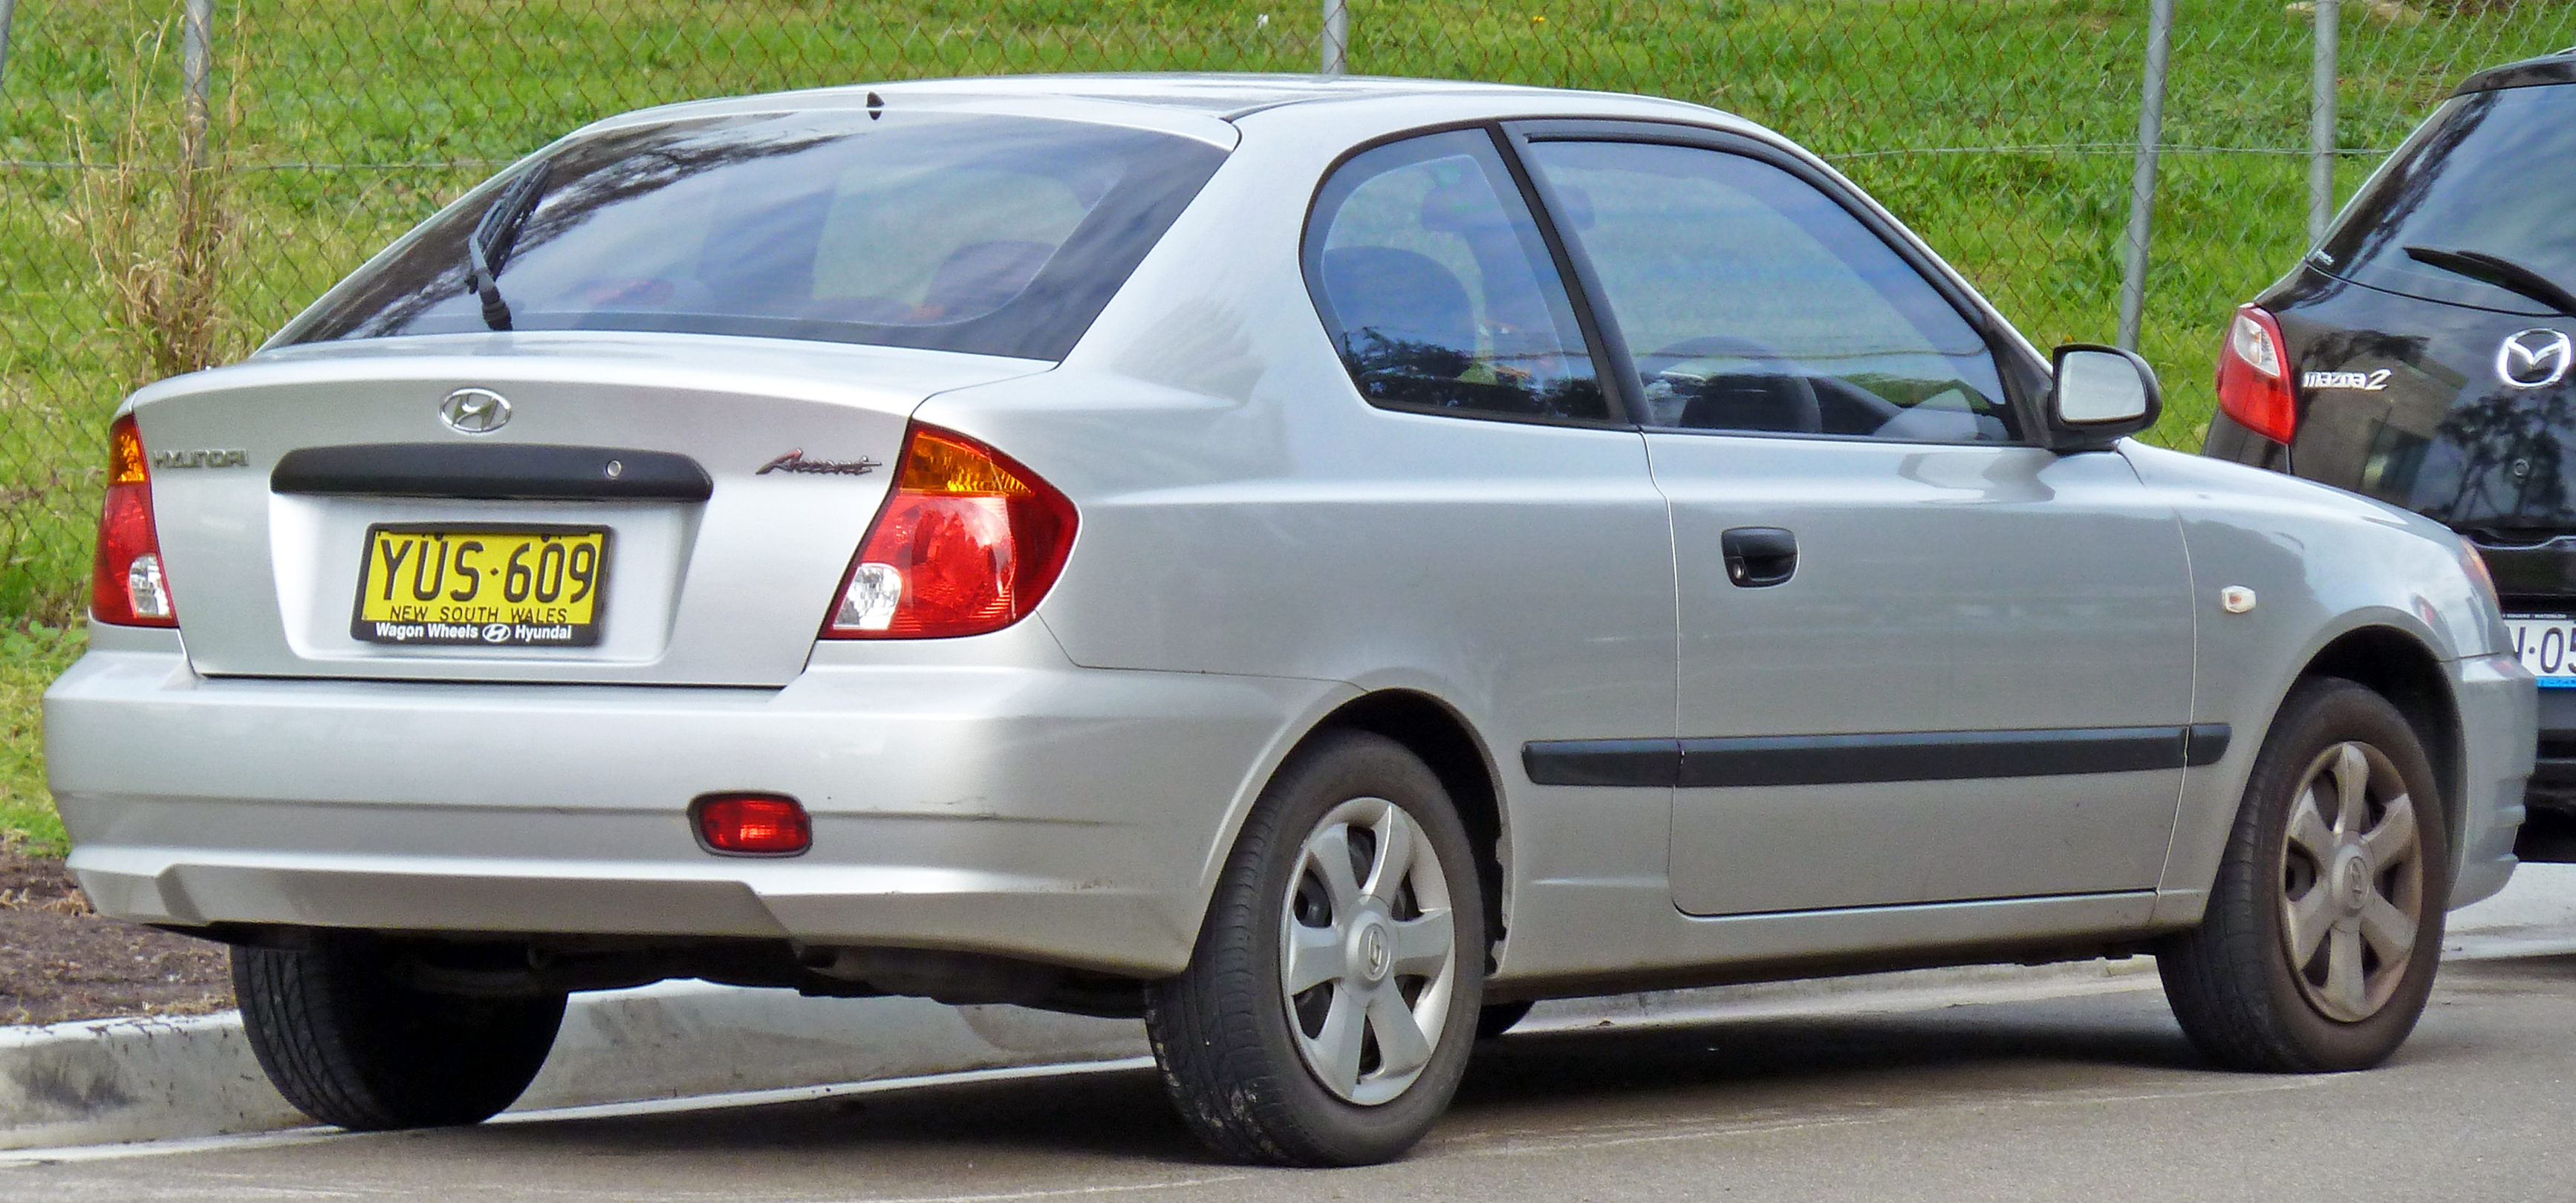 Hyundai Accent II Restyling 2003 - 2006 Hatchback 3 door #4